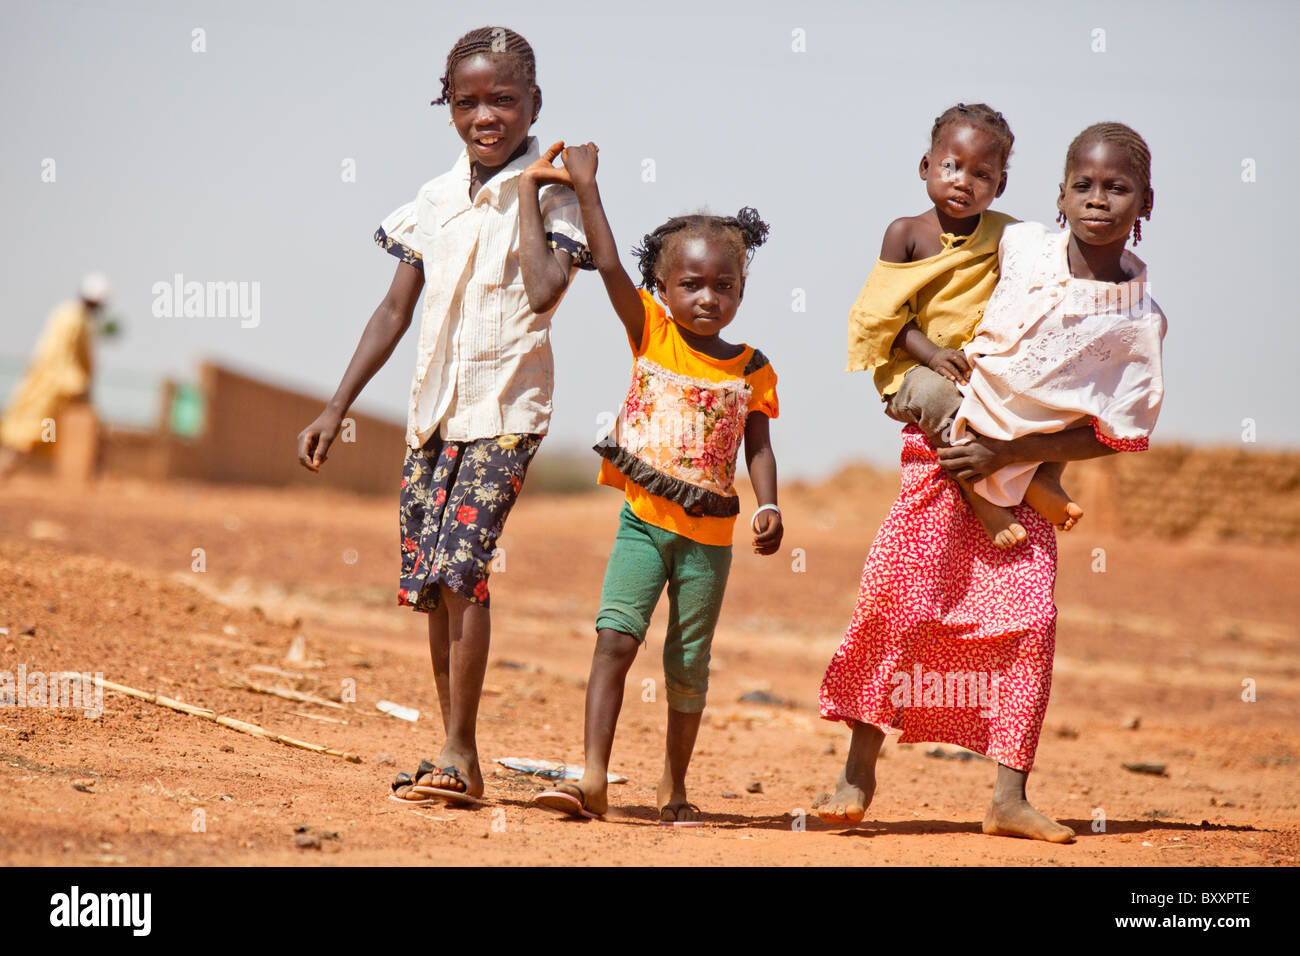 Children in the town of Djibo in northern Burkina Faso. - Stock Image